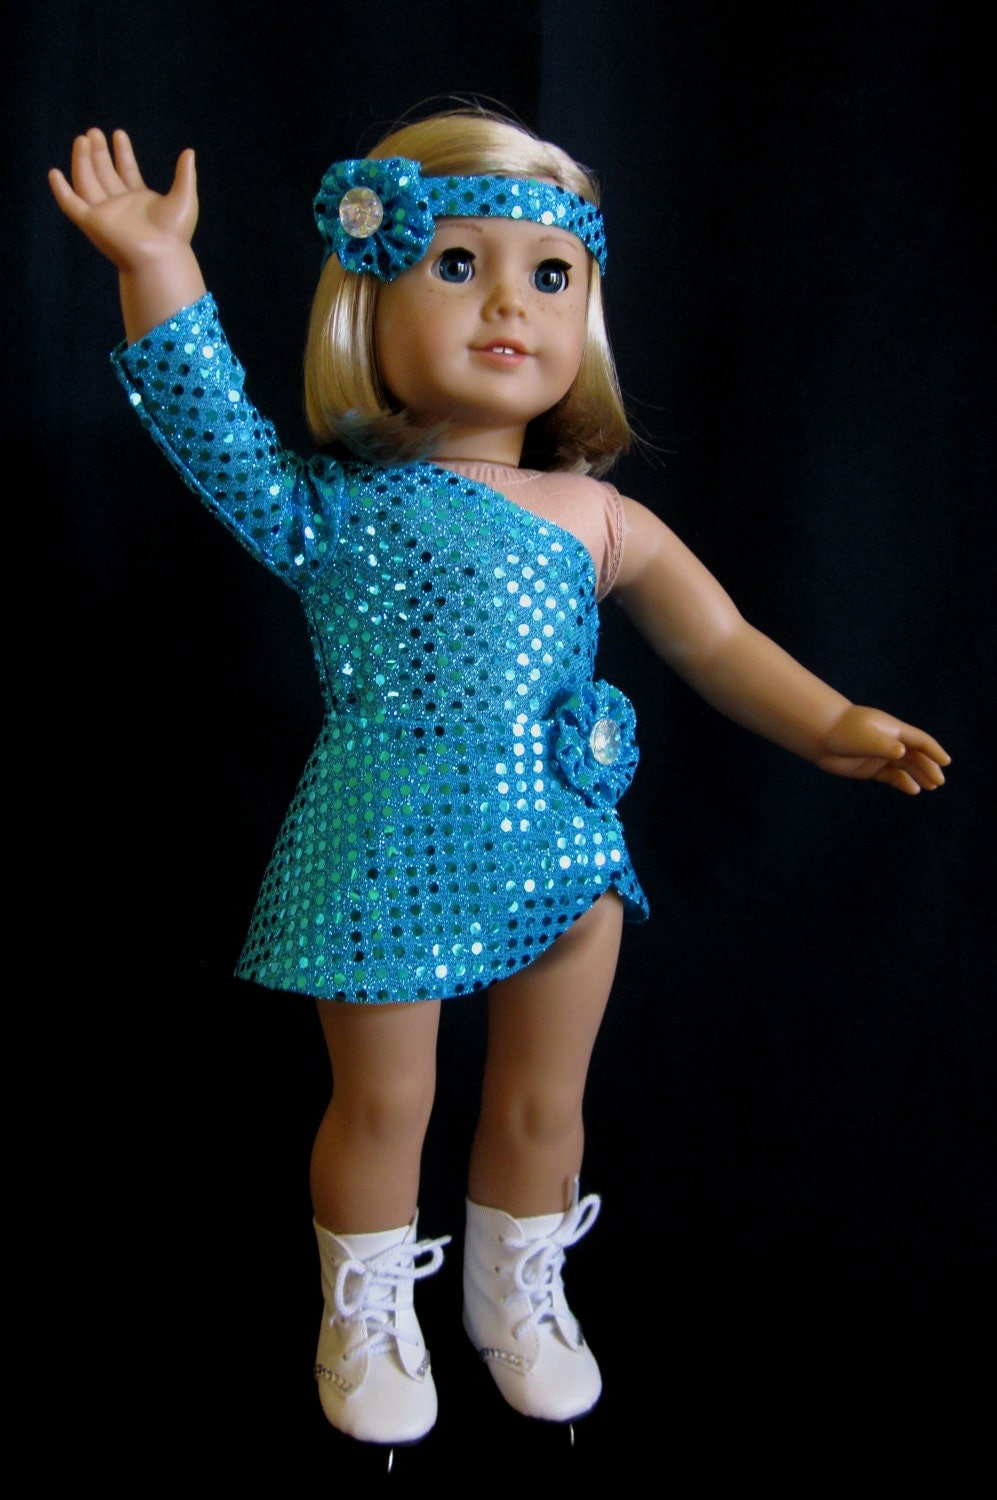 American Girl Clothes Ice Skating Costume in Turquoise